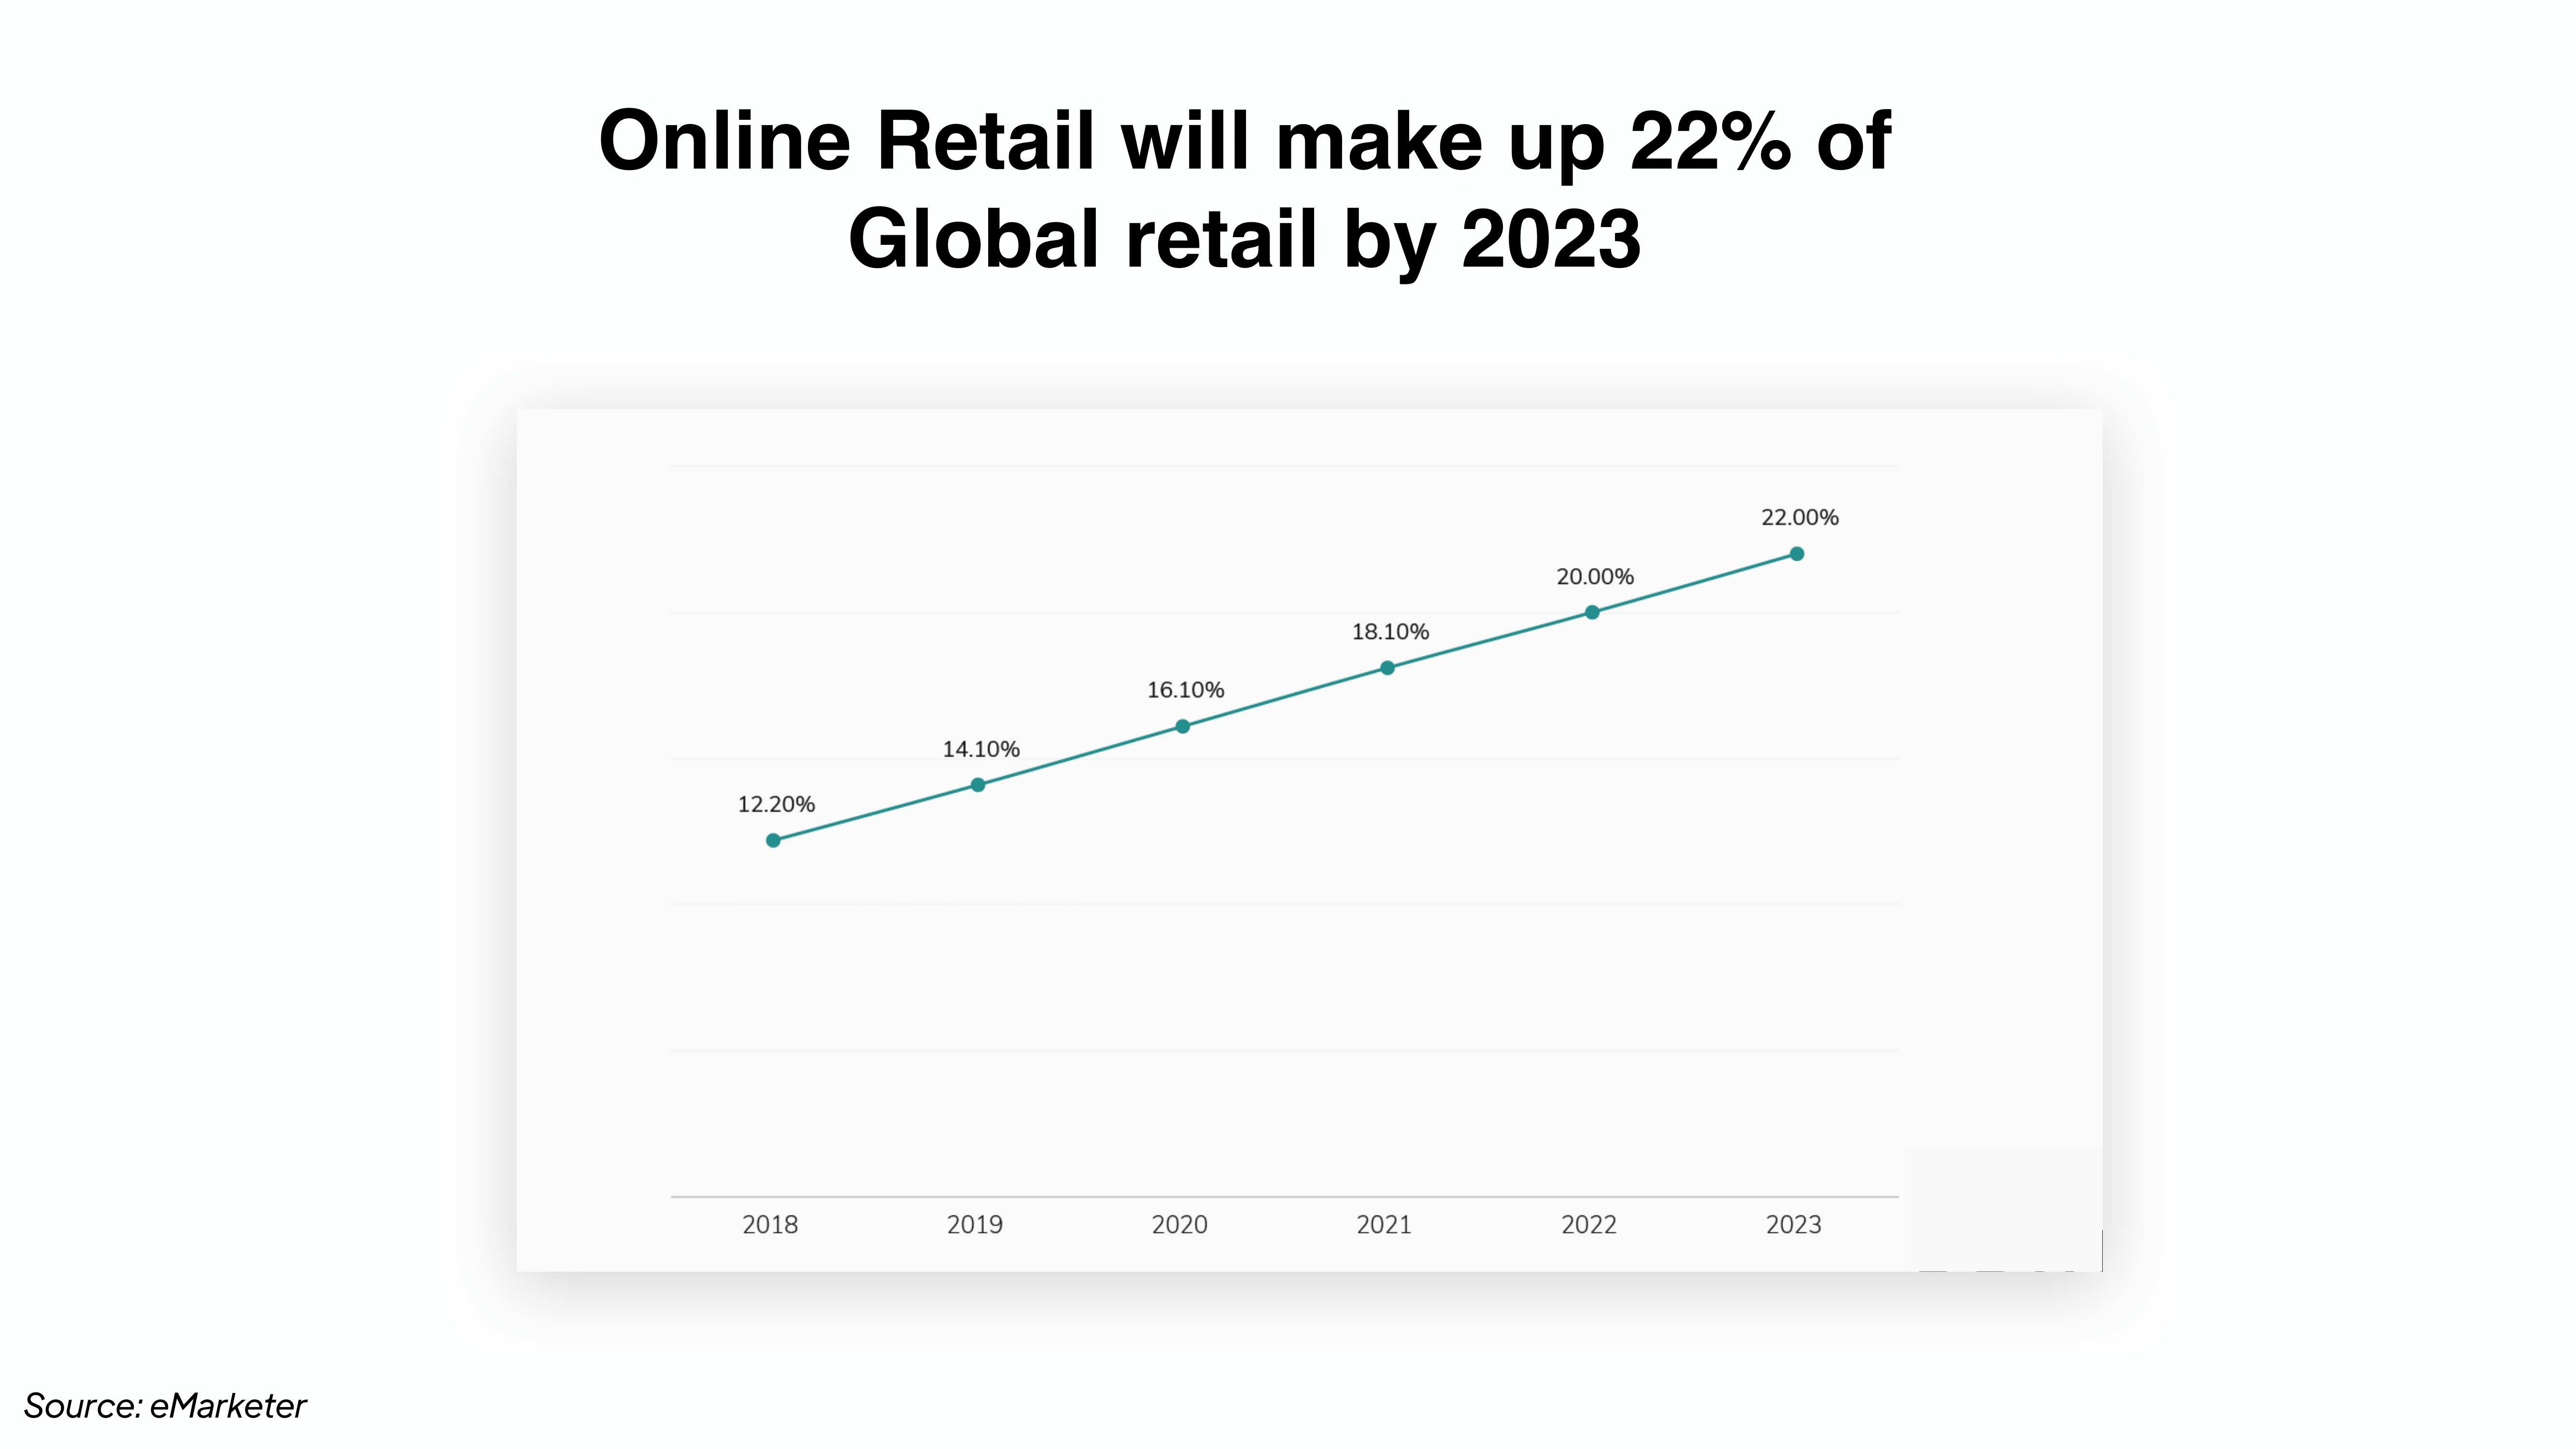 Digital agency on DTC strategy: eCommerce's share of global retail in the next few years.